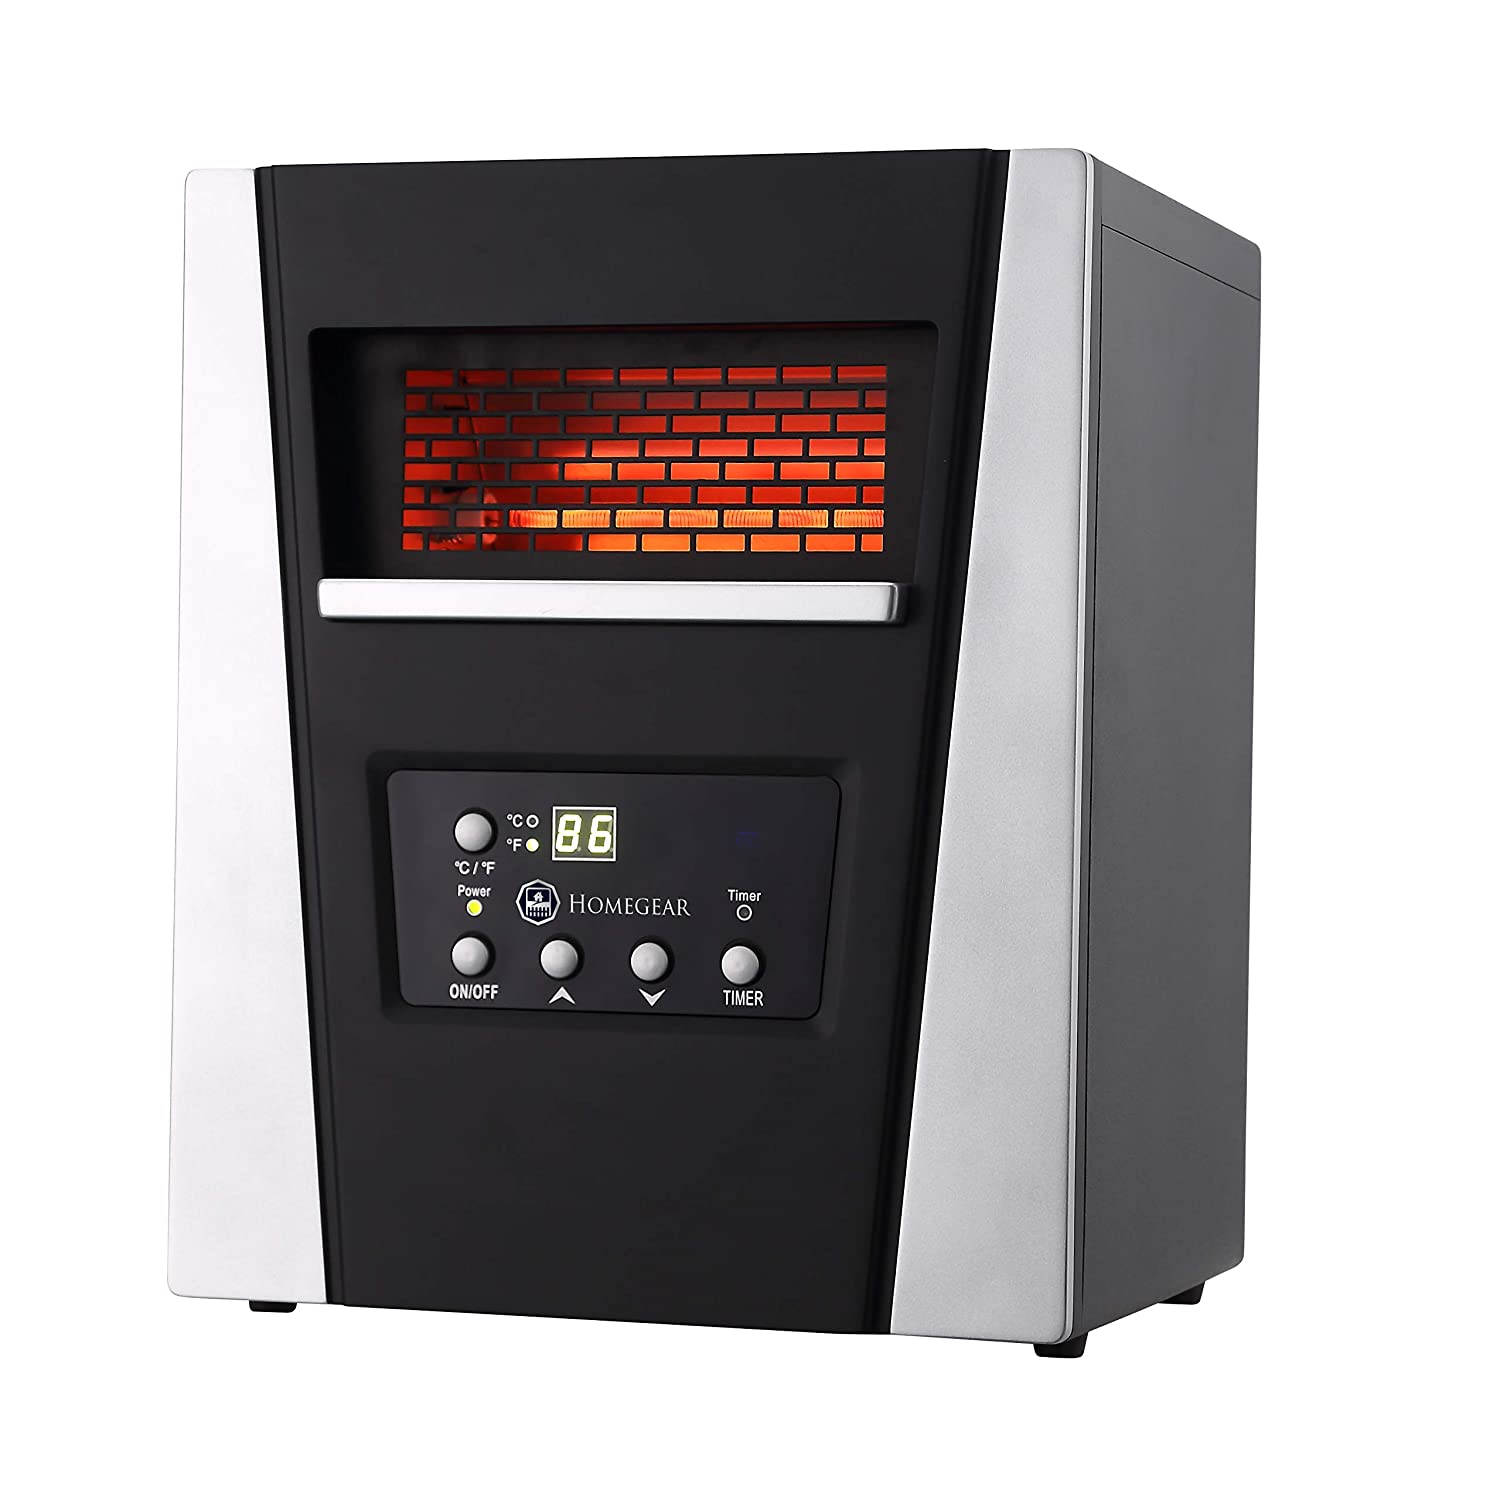 Homegear 1500 SqFt Infrared Electric Portable Space Heater Black Remote Control Renewed